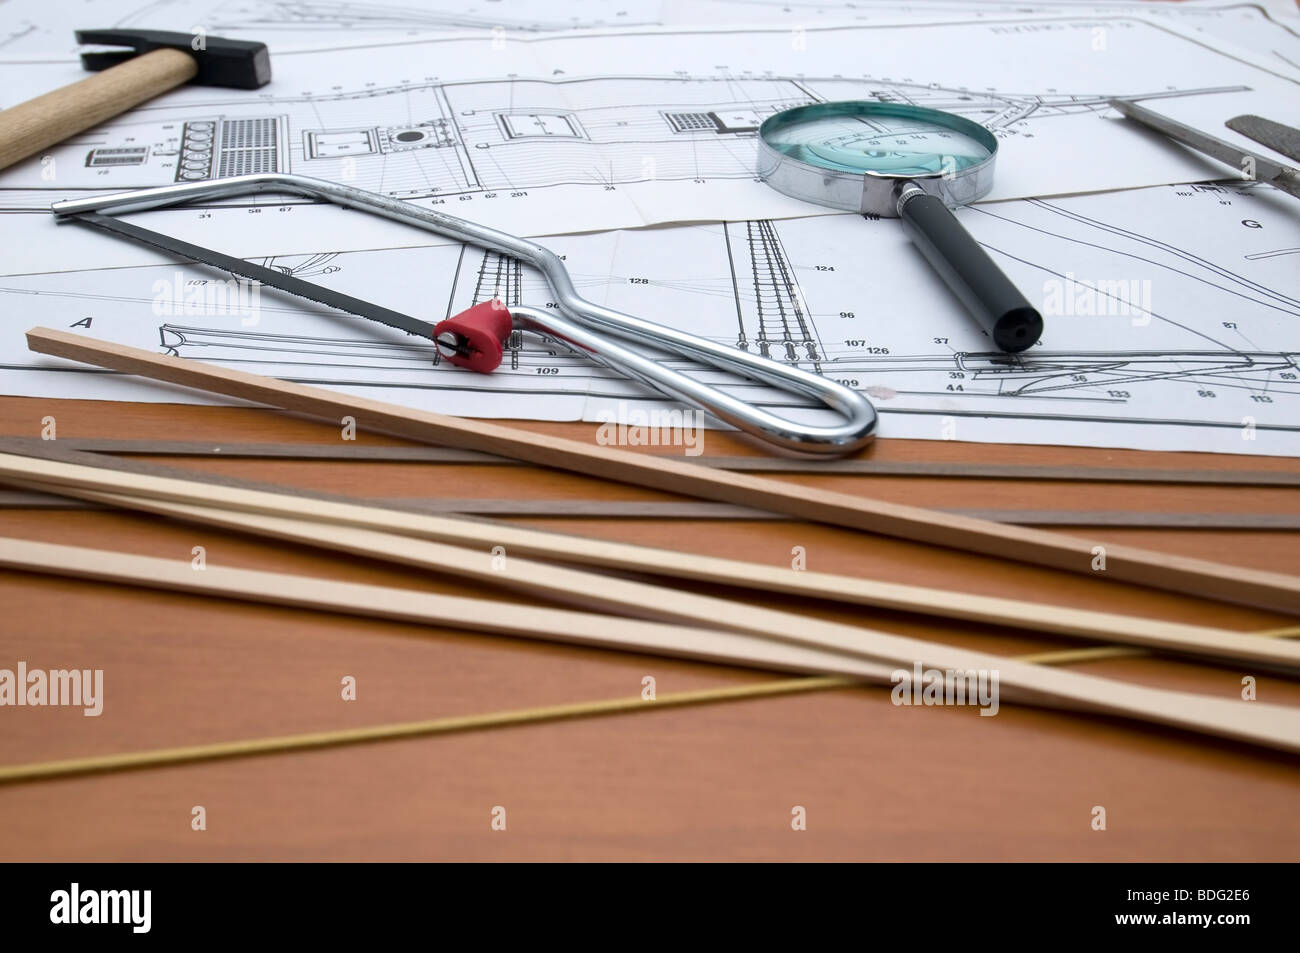 Construction plan of a model of old ship - Stock Image